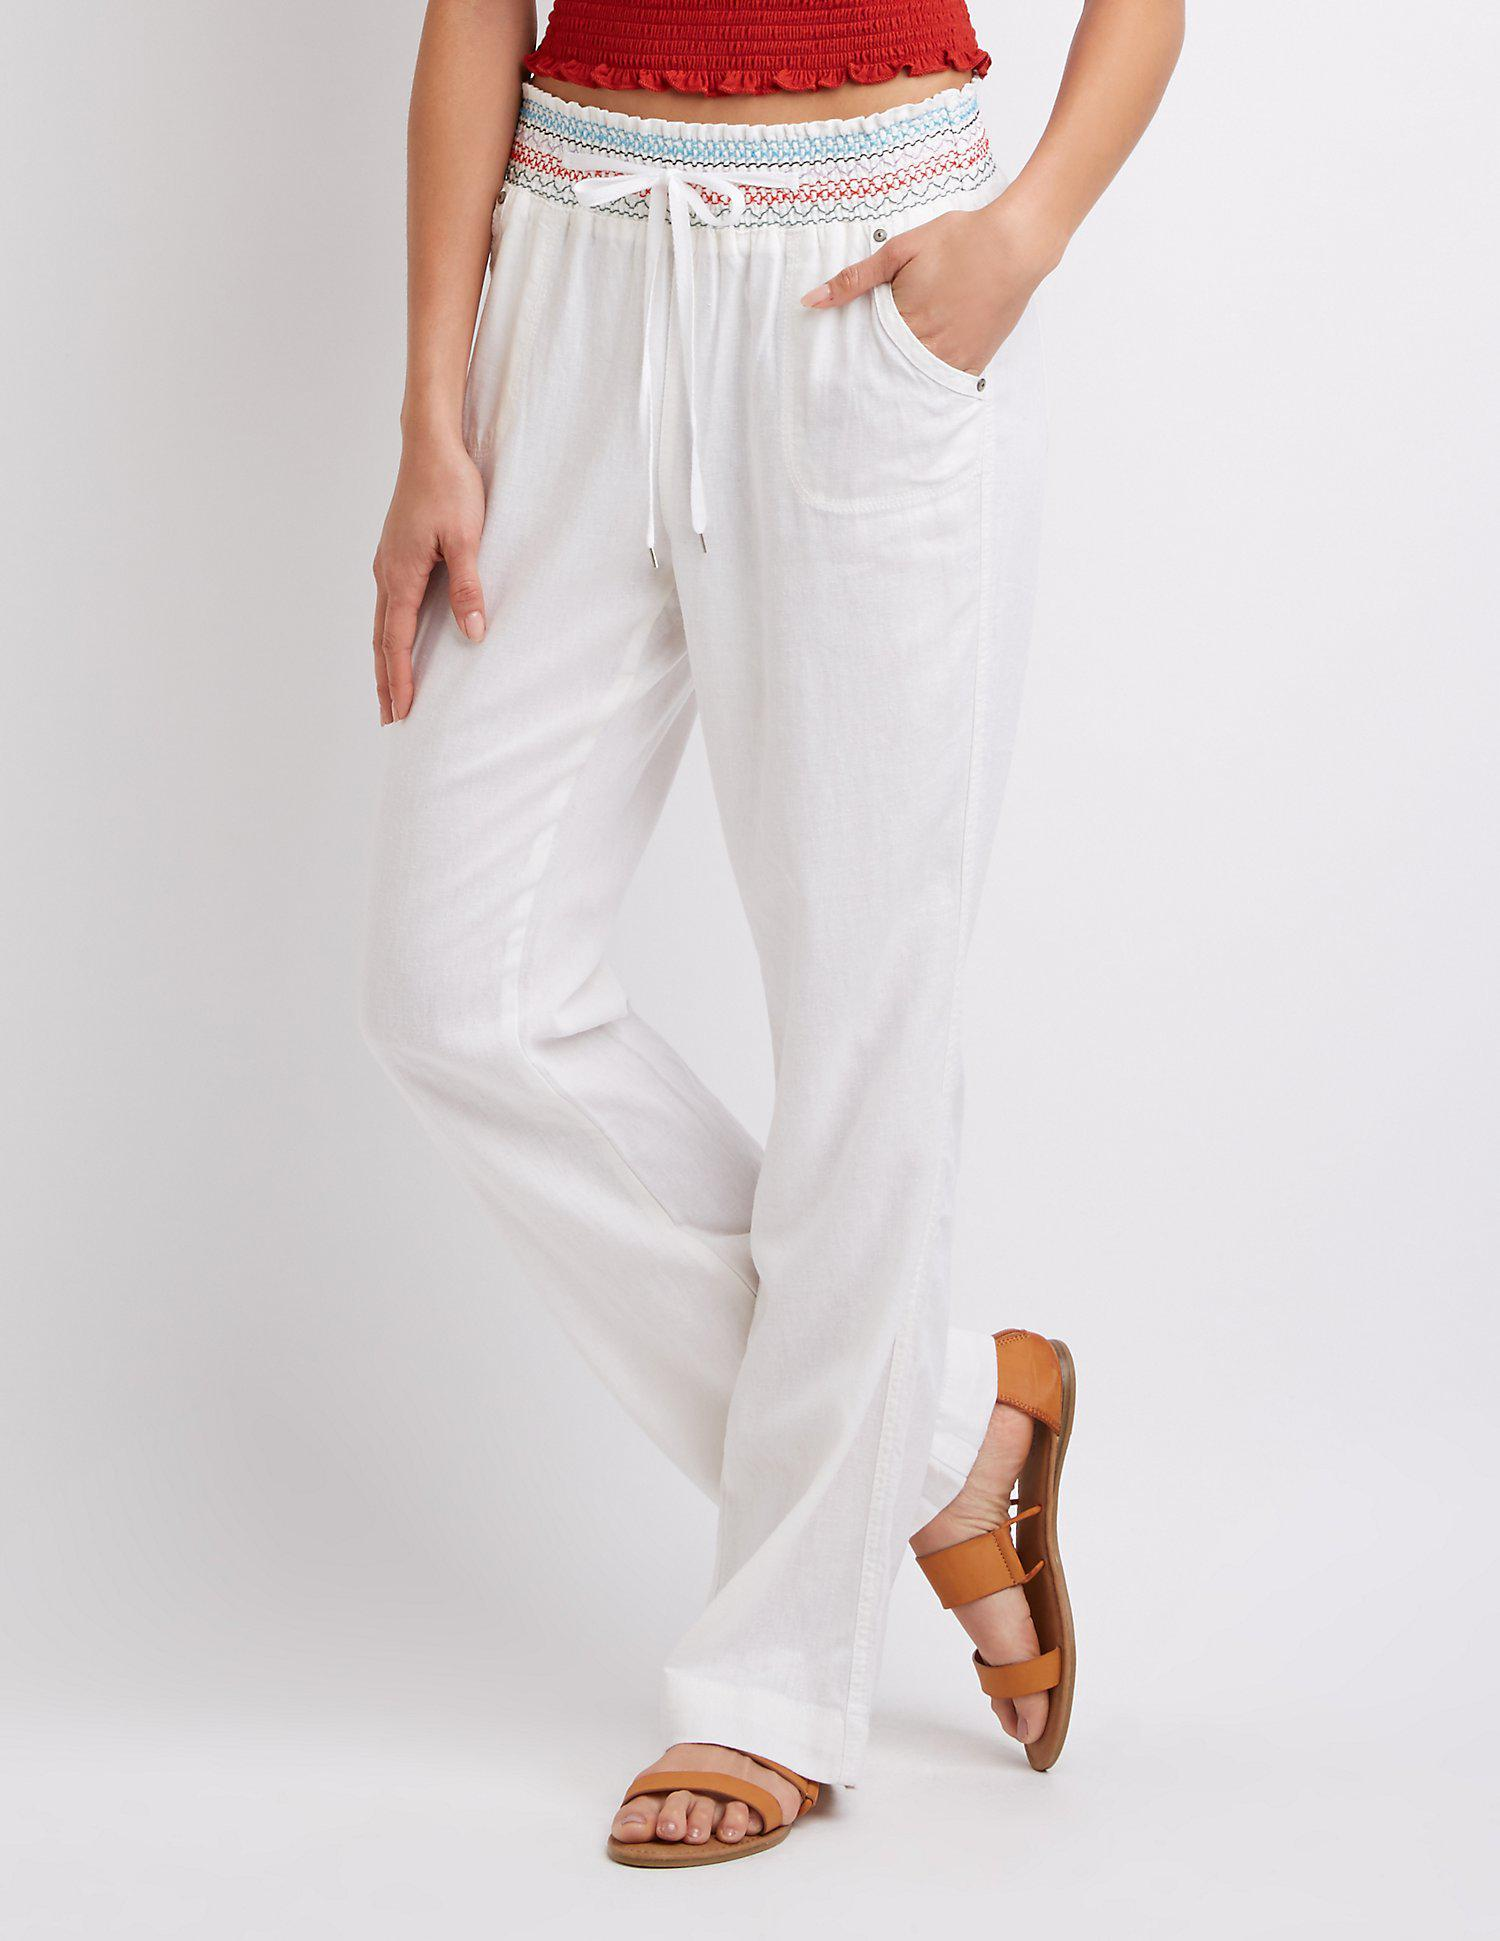 0839fbc7879fa Gallery. Previously sold at: Charlotte Russe · Women's Palazzo Pants